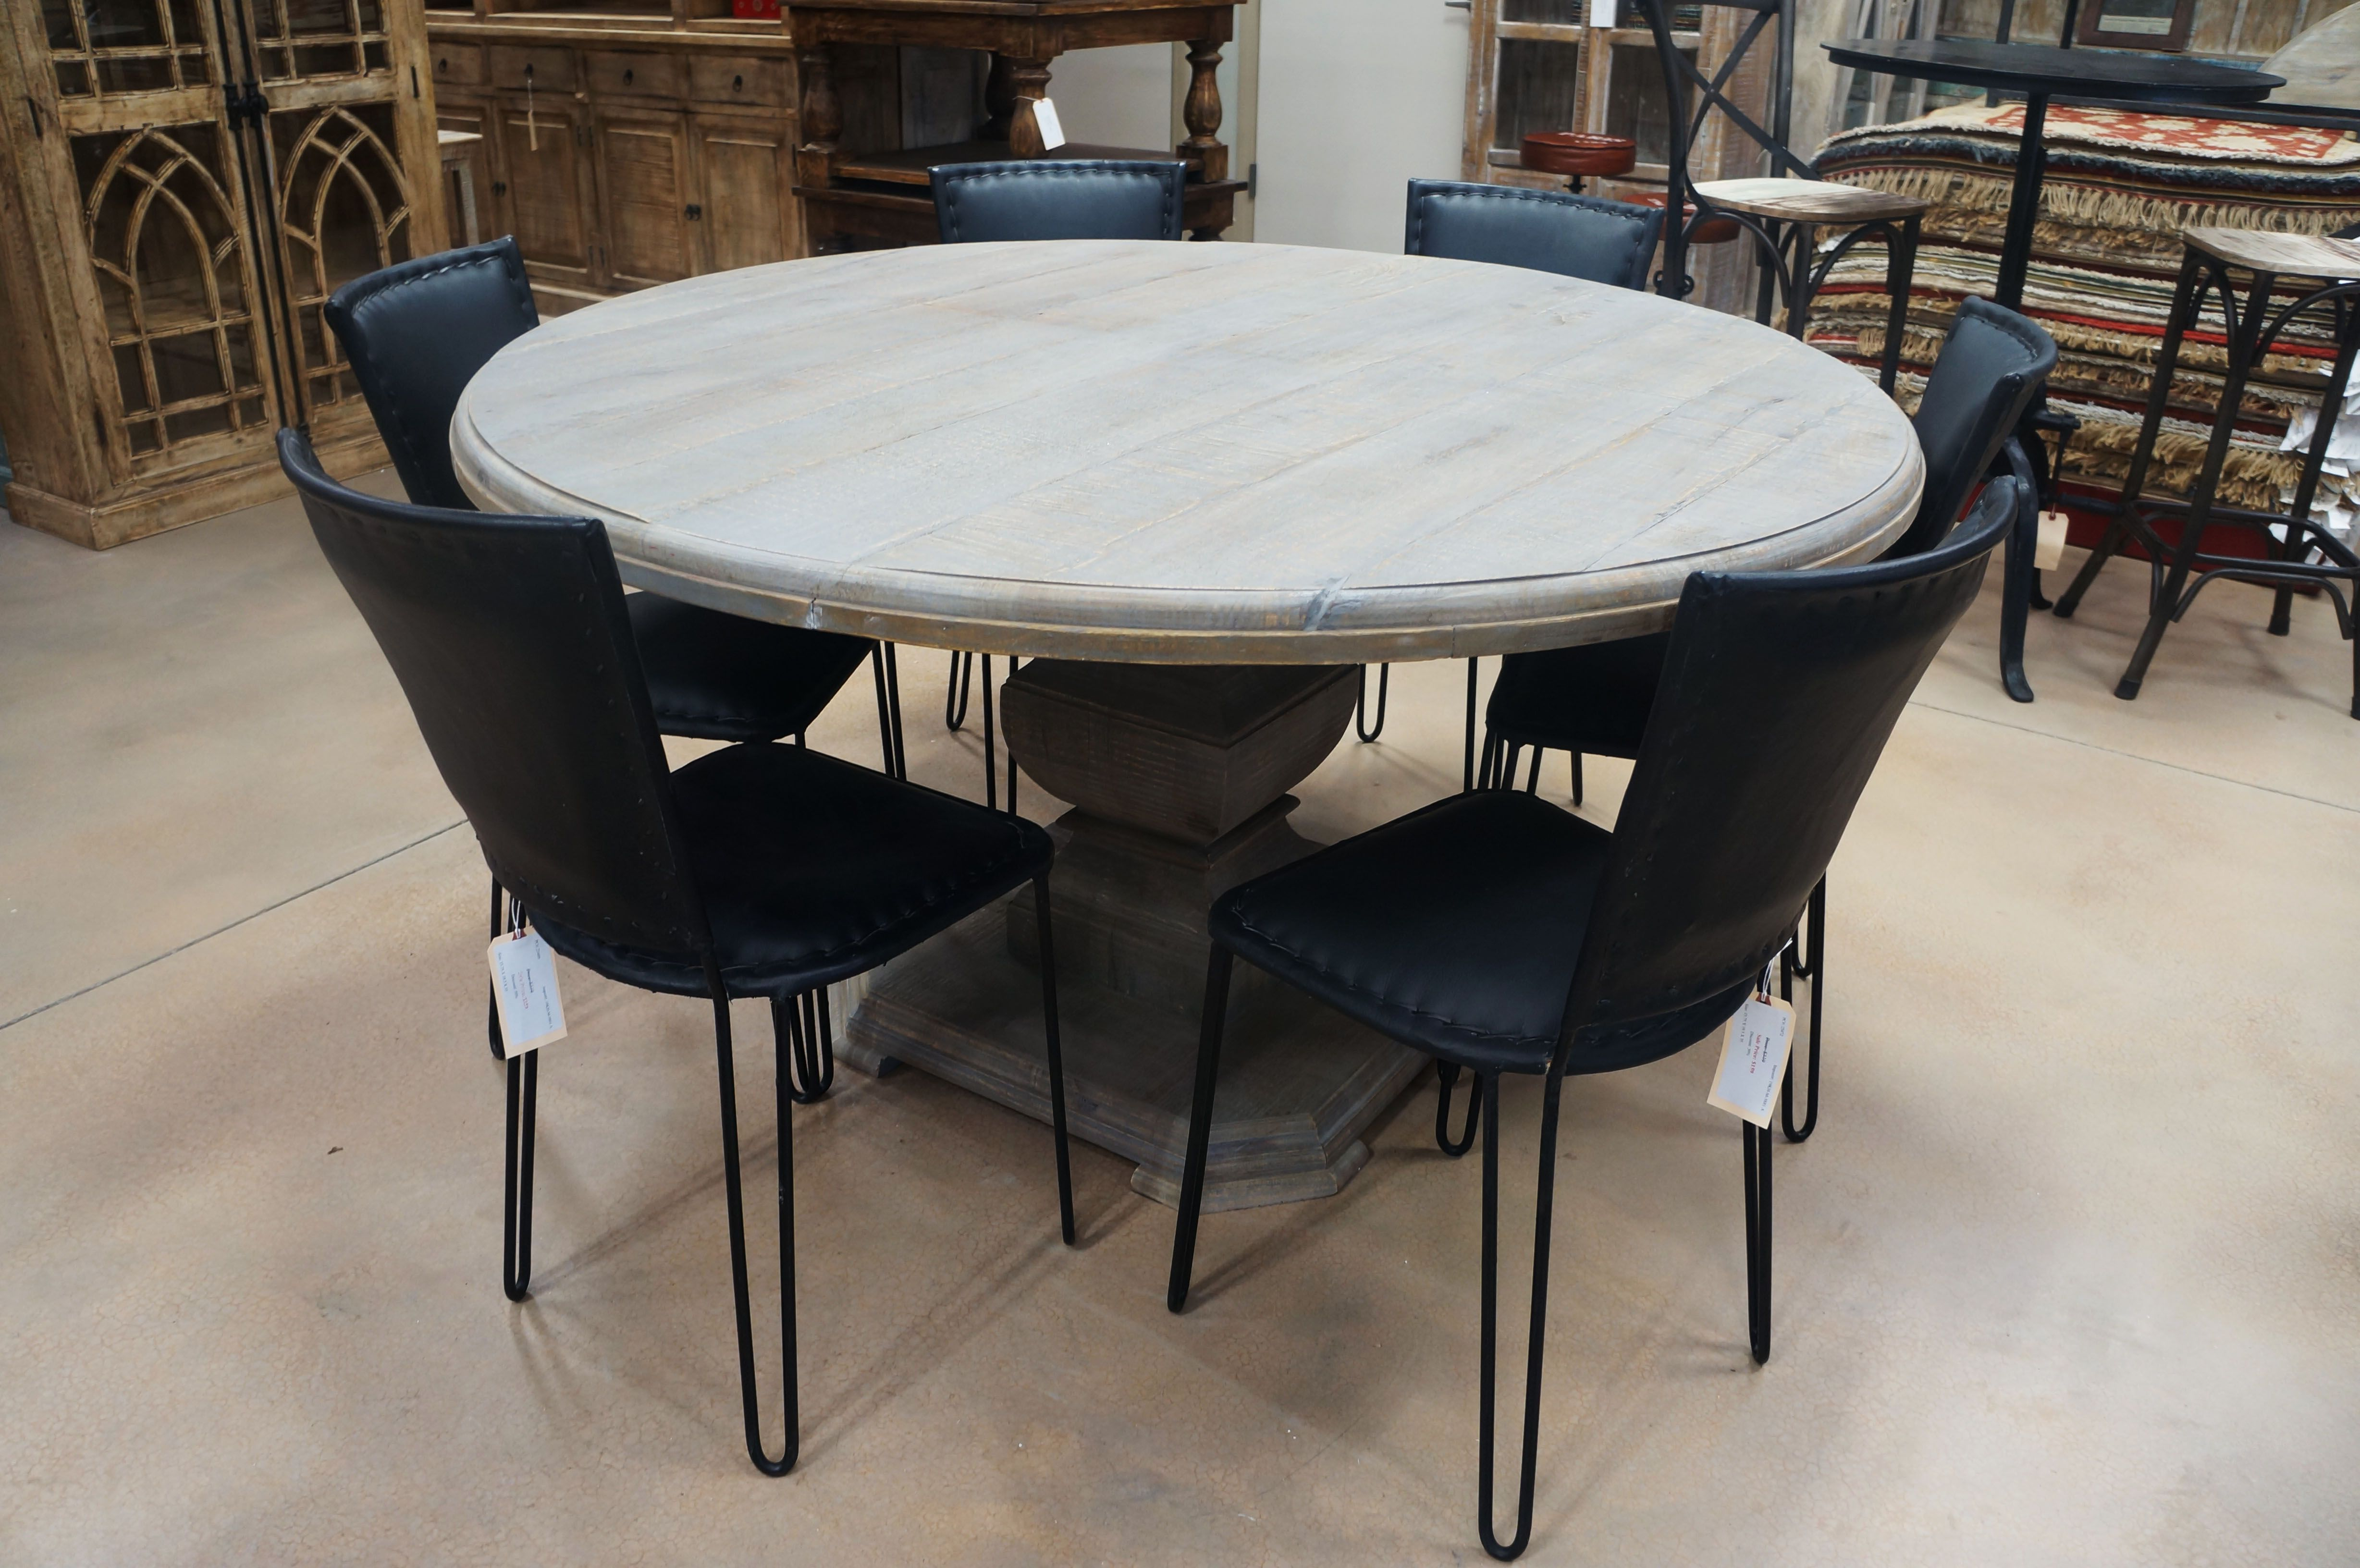 Round Dining Table With A Grey Finish 60 Inches Round With Couple Of Black Leather Chairs Around It Round Dining Table Dining Table Black Leather Chair